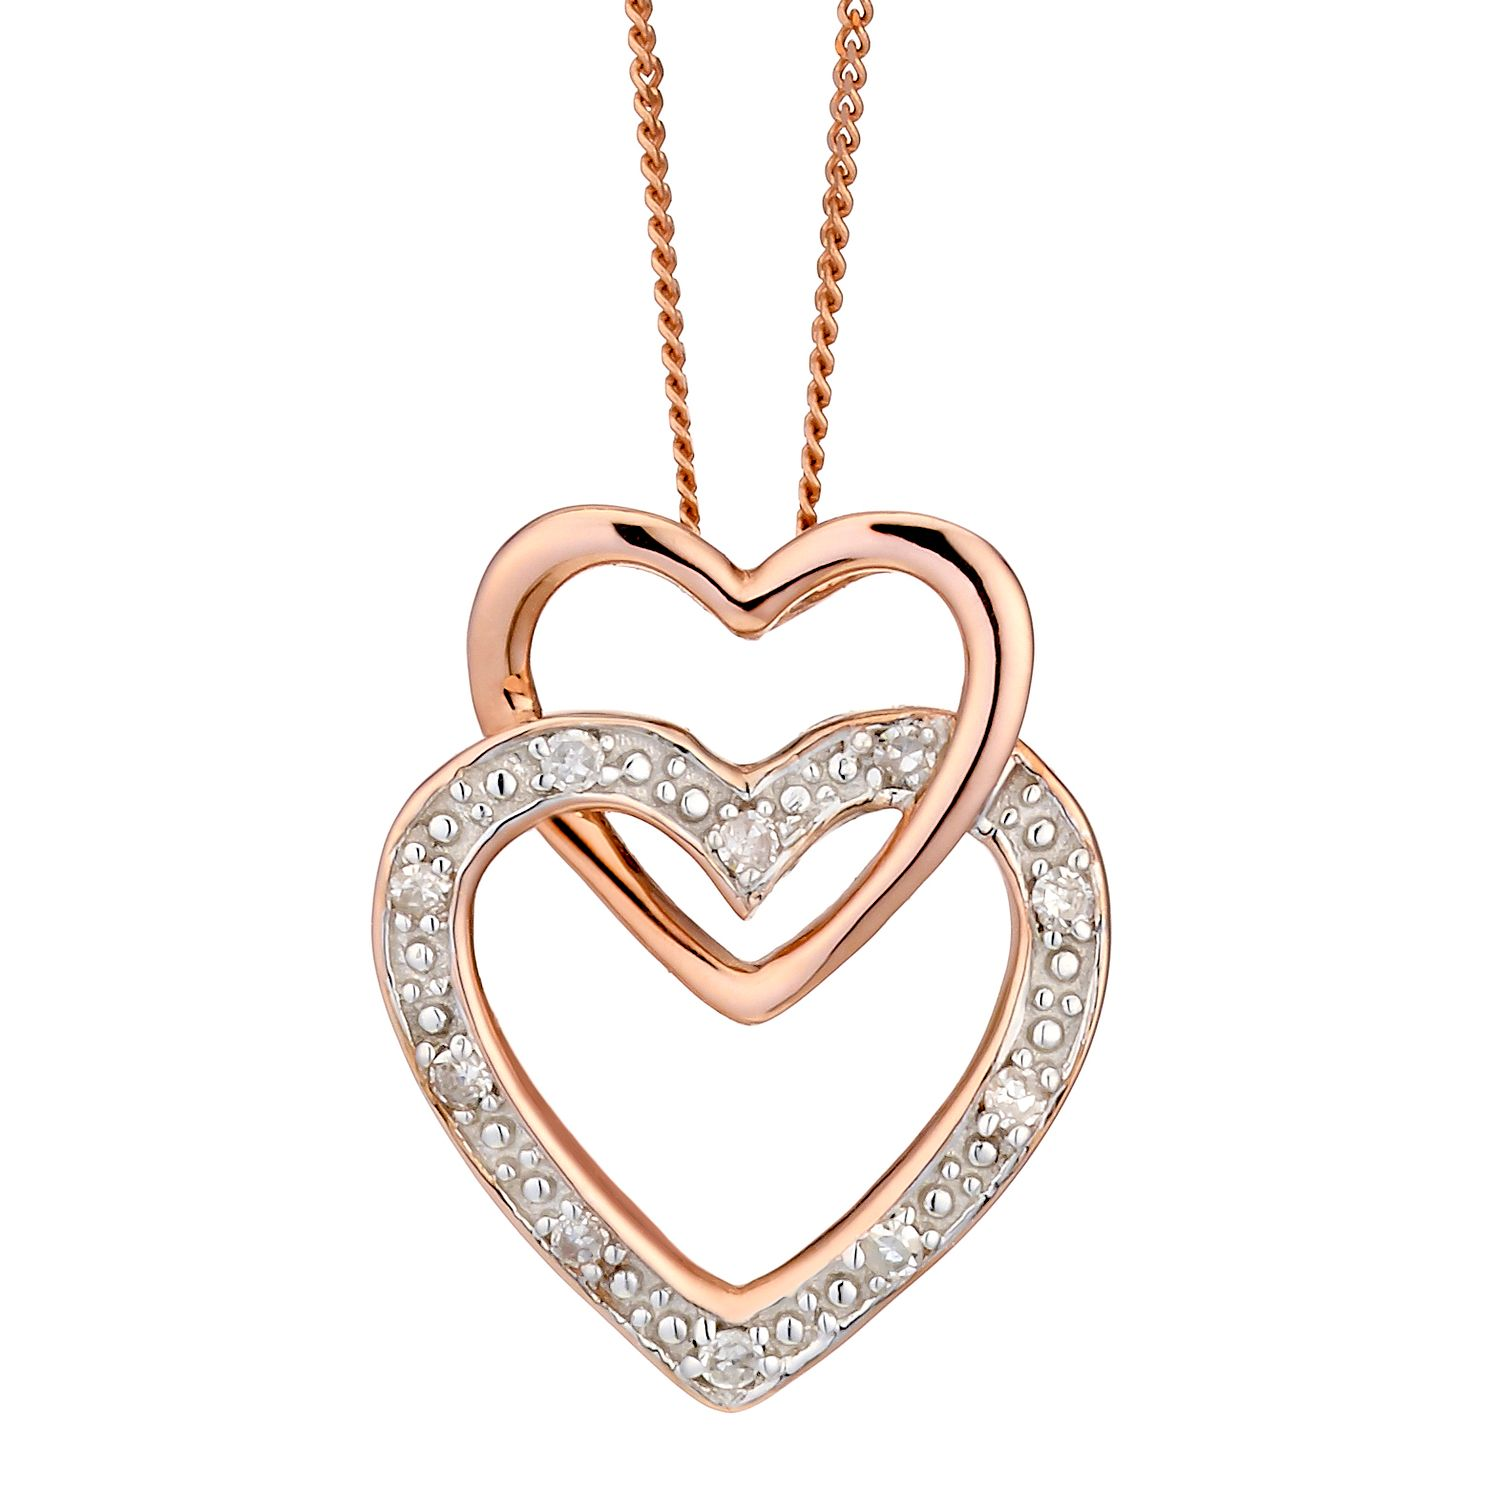 p women a hei this wid fmt plated item s pendant heart crystal silver double about target